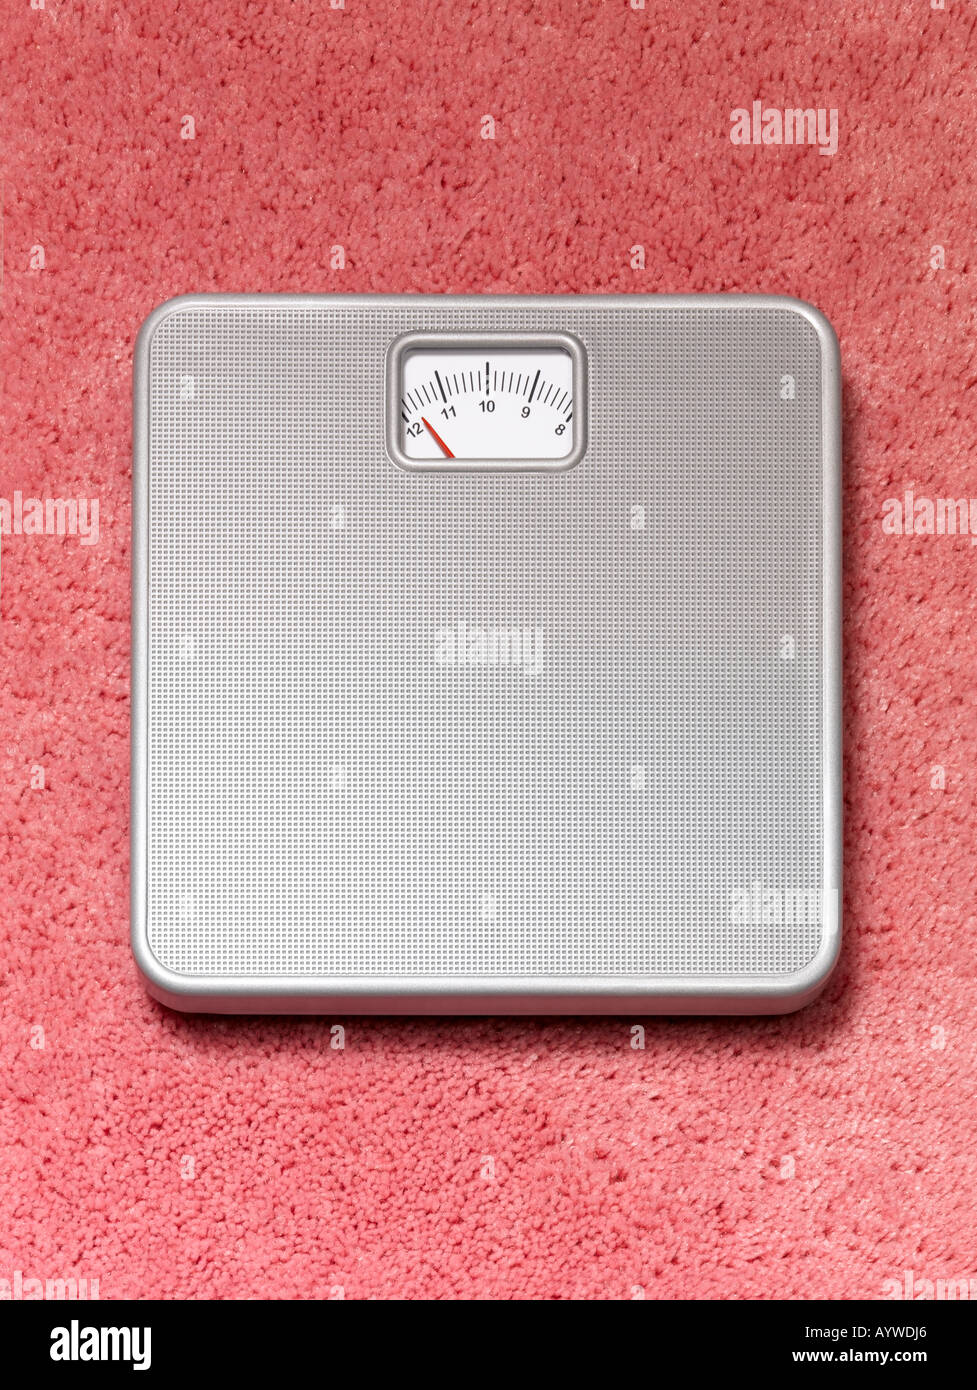 a bathroom weighing scales on a pink fluffy carpet stock photo royalty free image 9820901 alamy